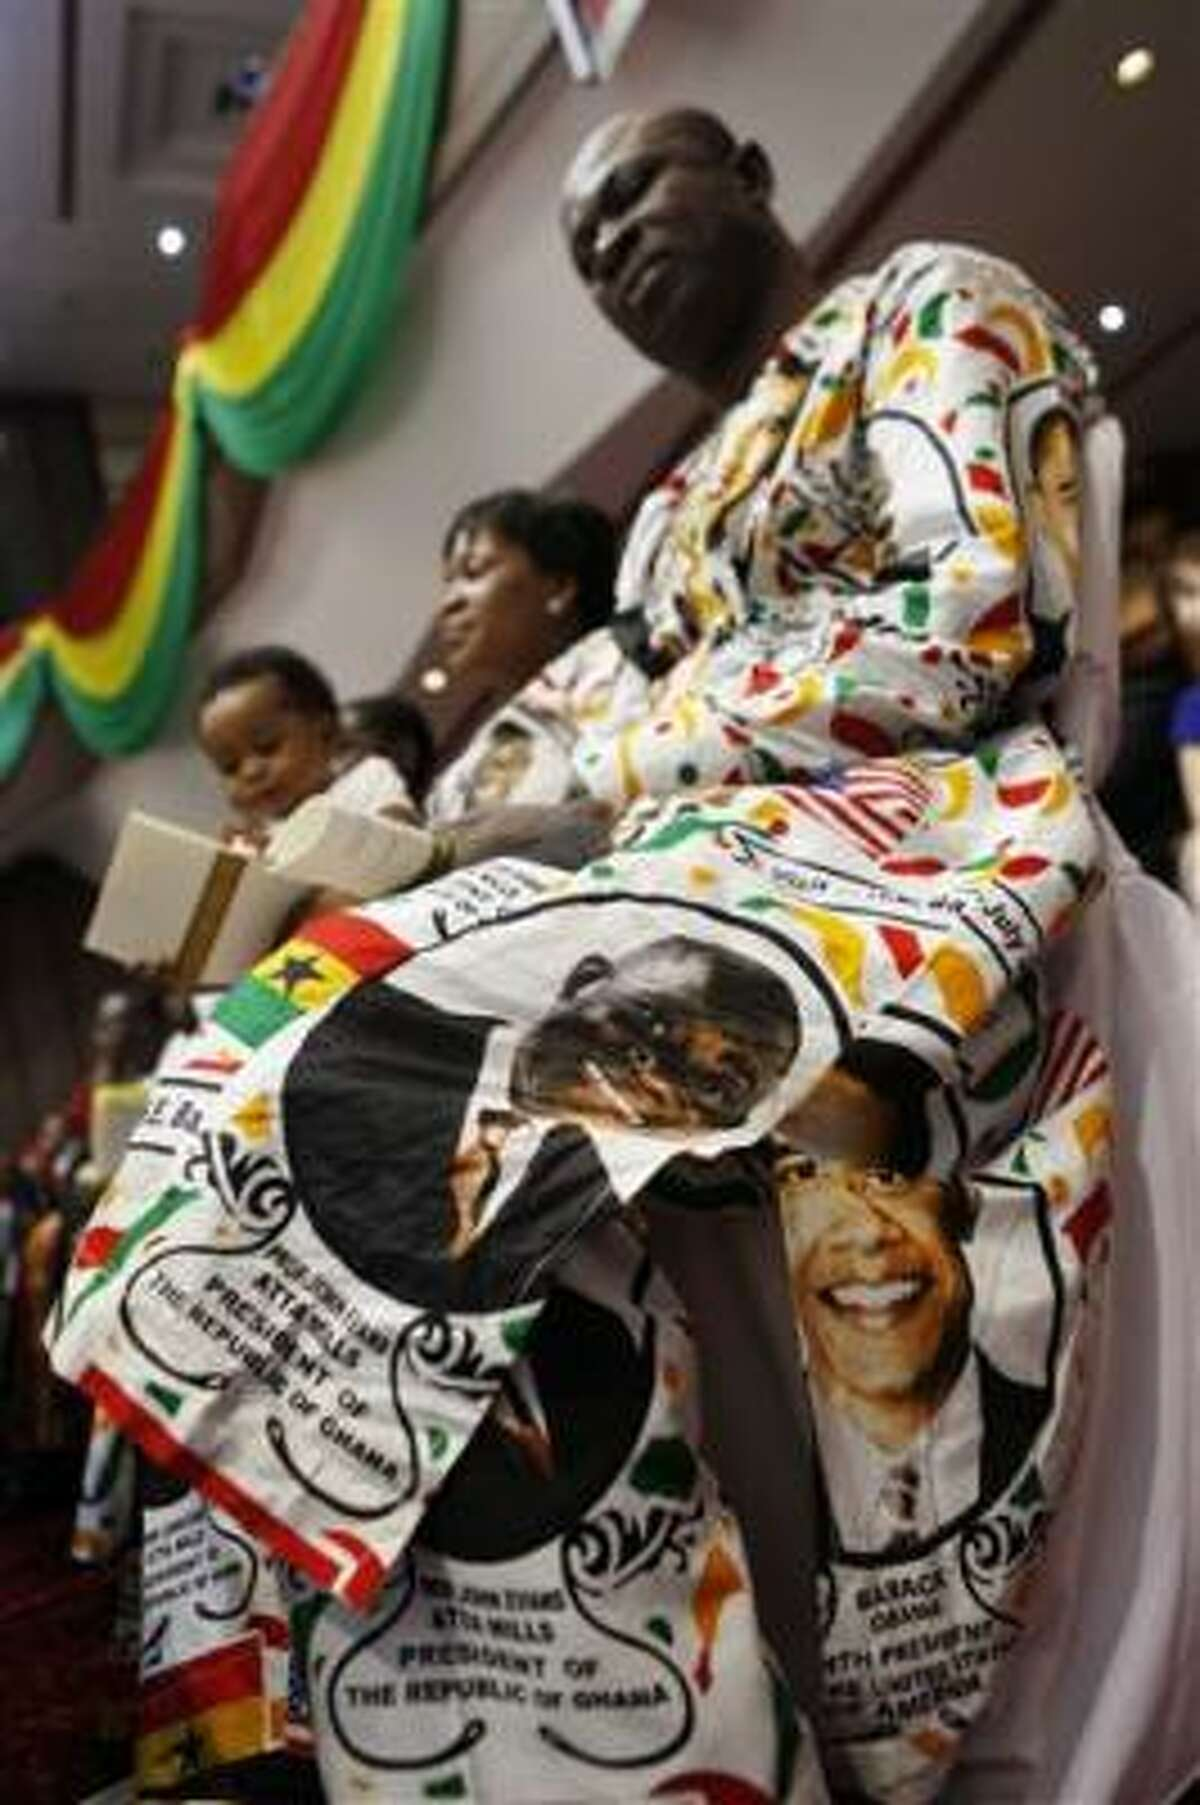 The president's image adorns clothing.